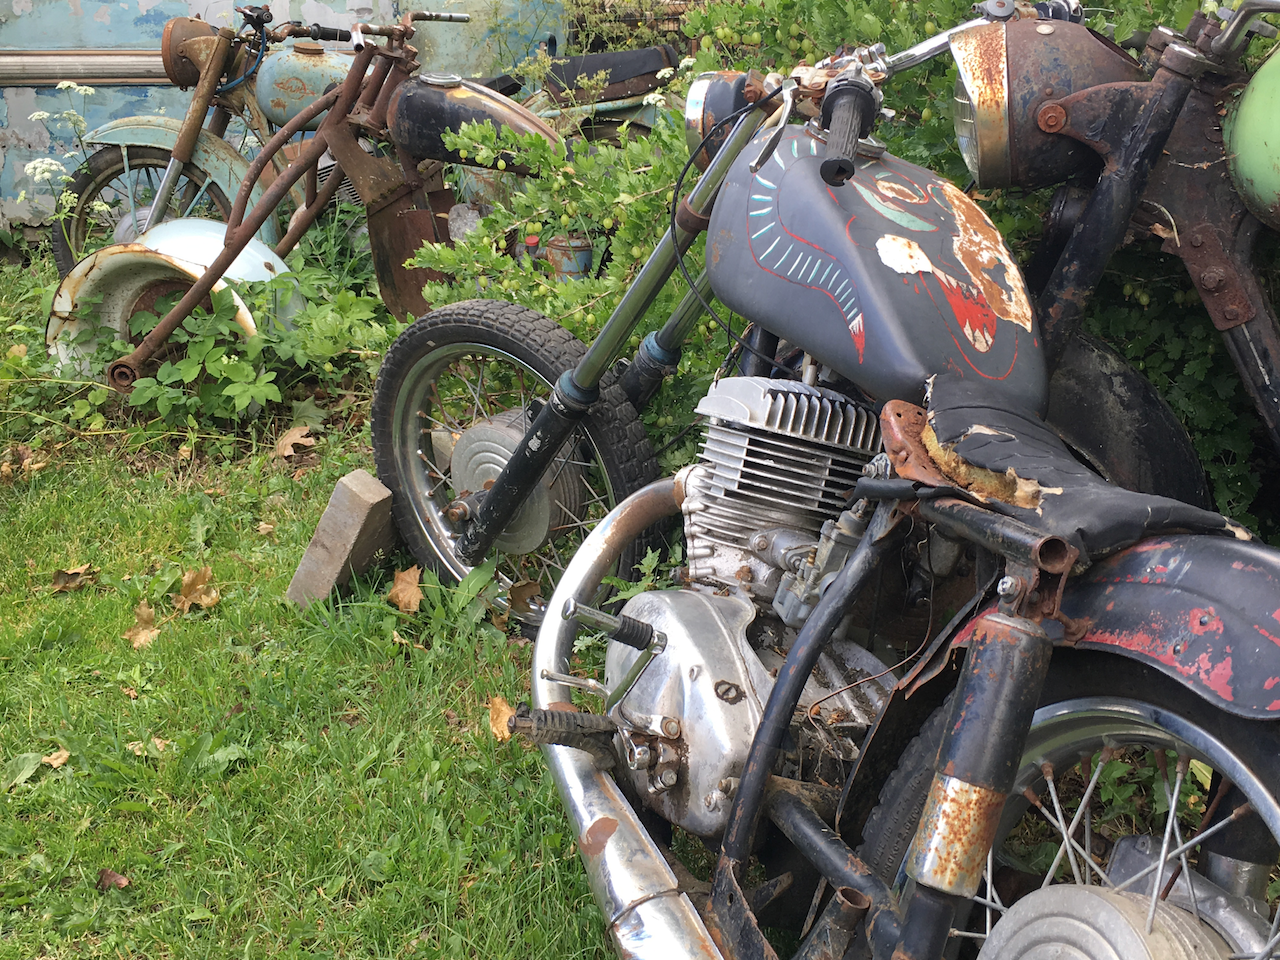 """Old motorcycles are slowly consumed by nature in a """"car graveyard"""" outside Tallinn, Estonia"""